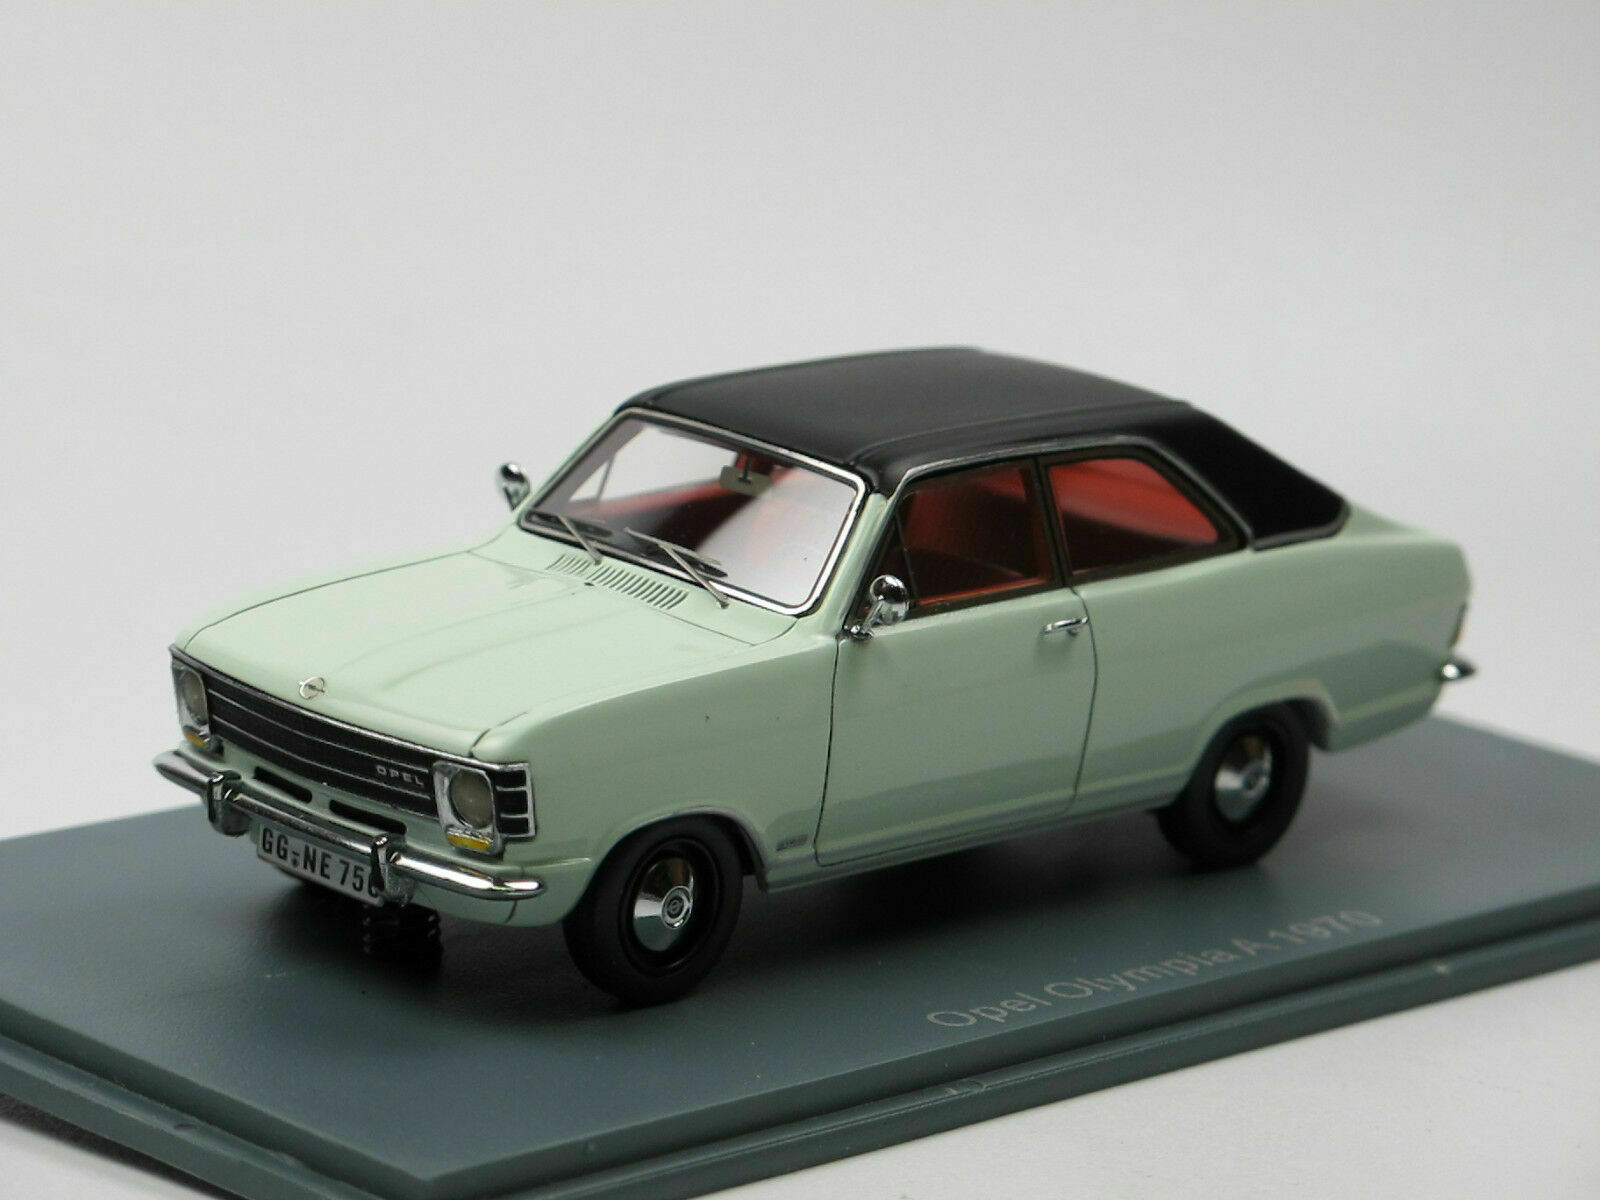 OPEL OLYMPIA A 1970 COUPE blanc NEO 43756 1 43 WEISS BIANCE BLANC RESIN